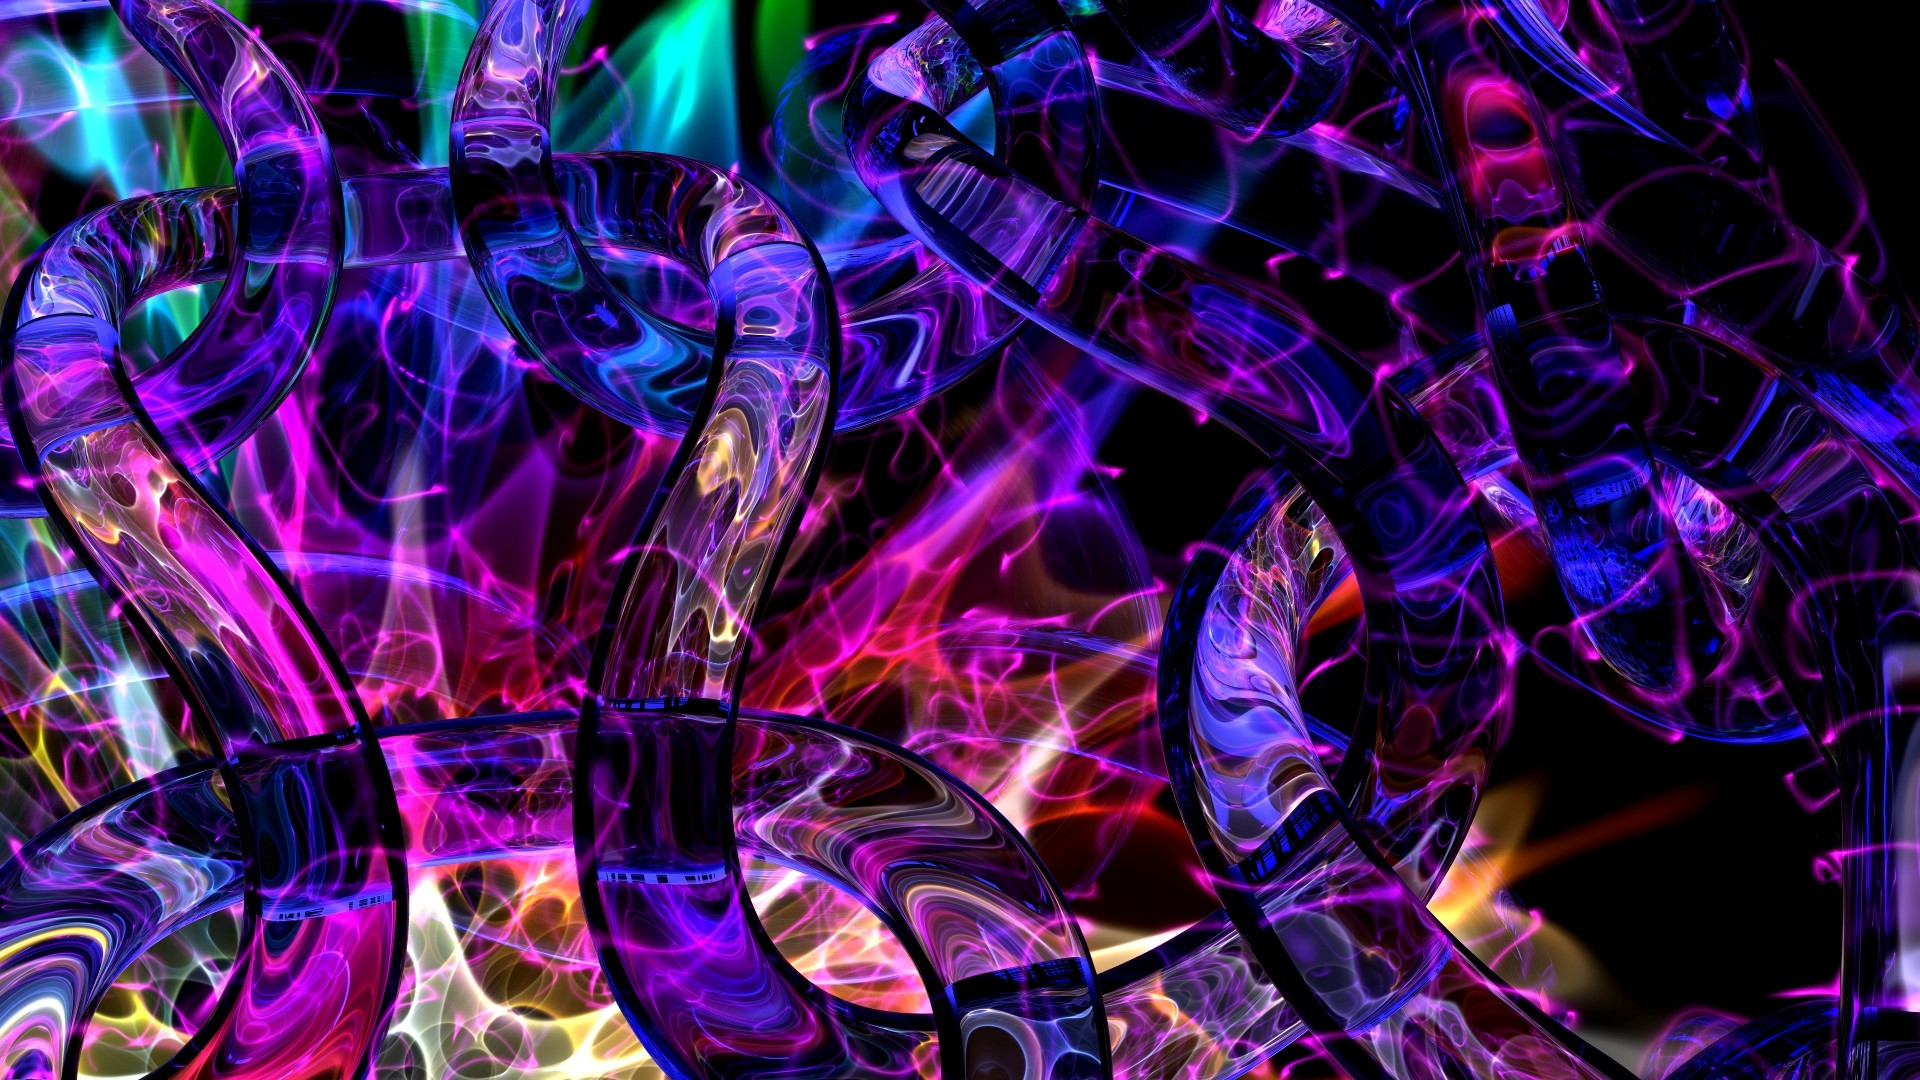 1920x1080 Collection of Crazy Trippy Wallpapers on HDWallpapers 1920×1080 Trippy Wallpapers (41 Wallpapers)